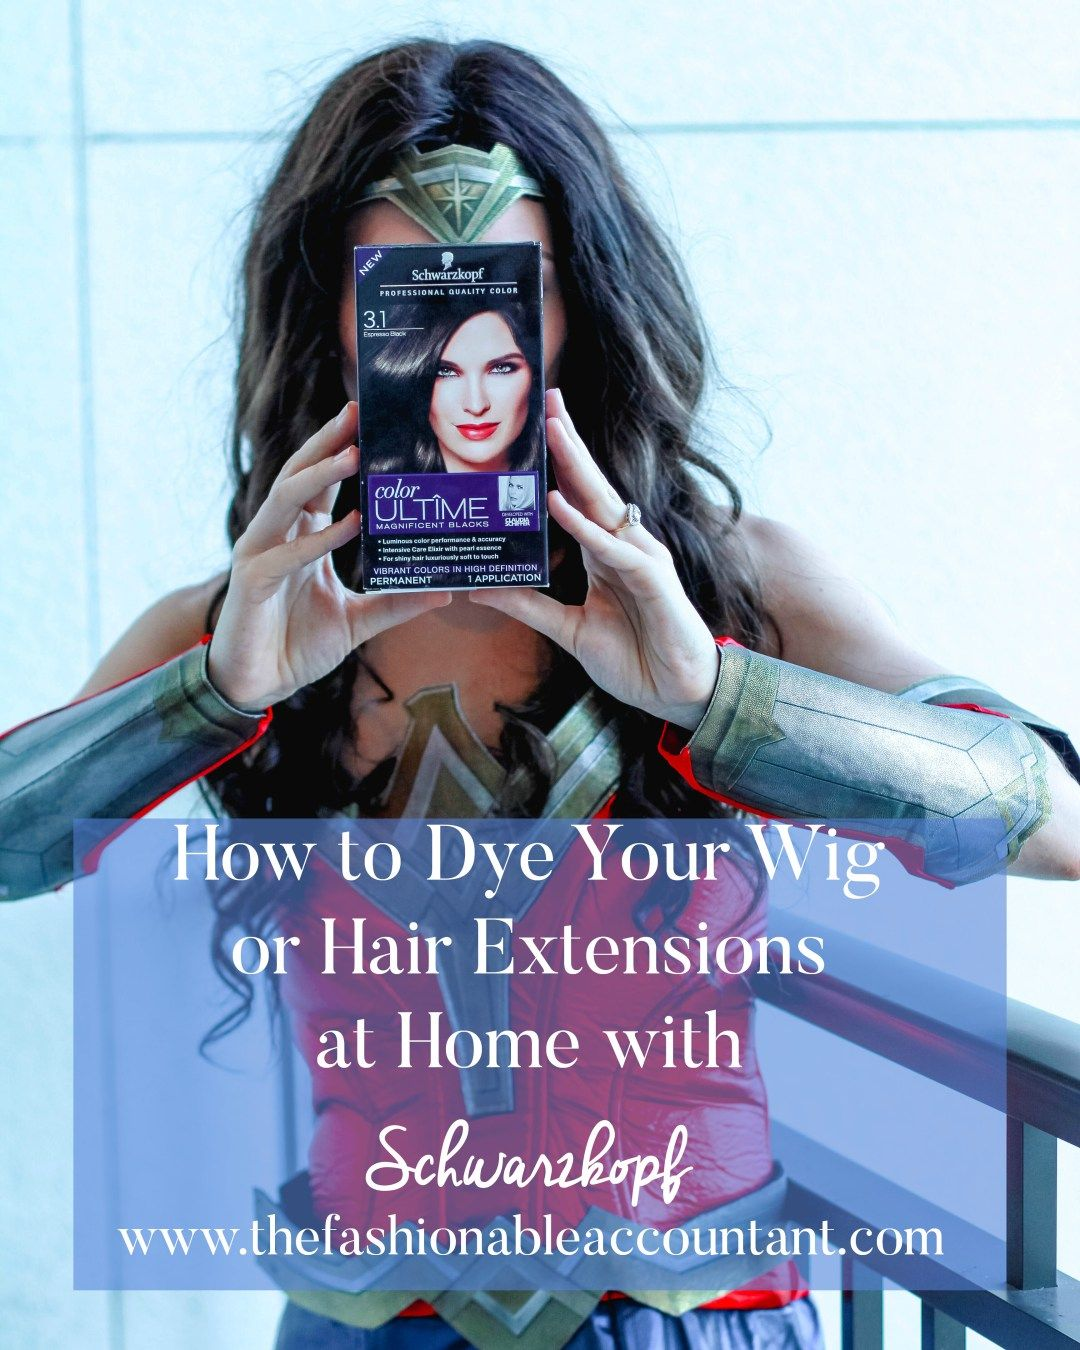 Dye your wig and hair extensions at home hair extensions